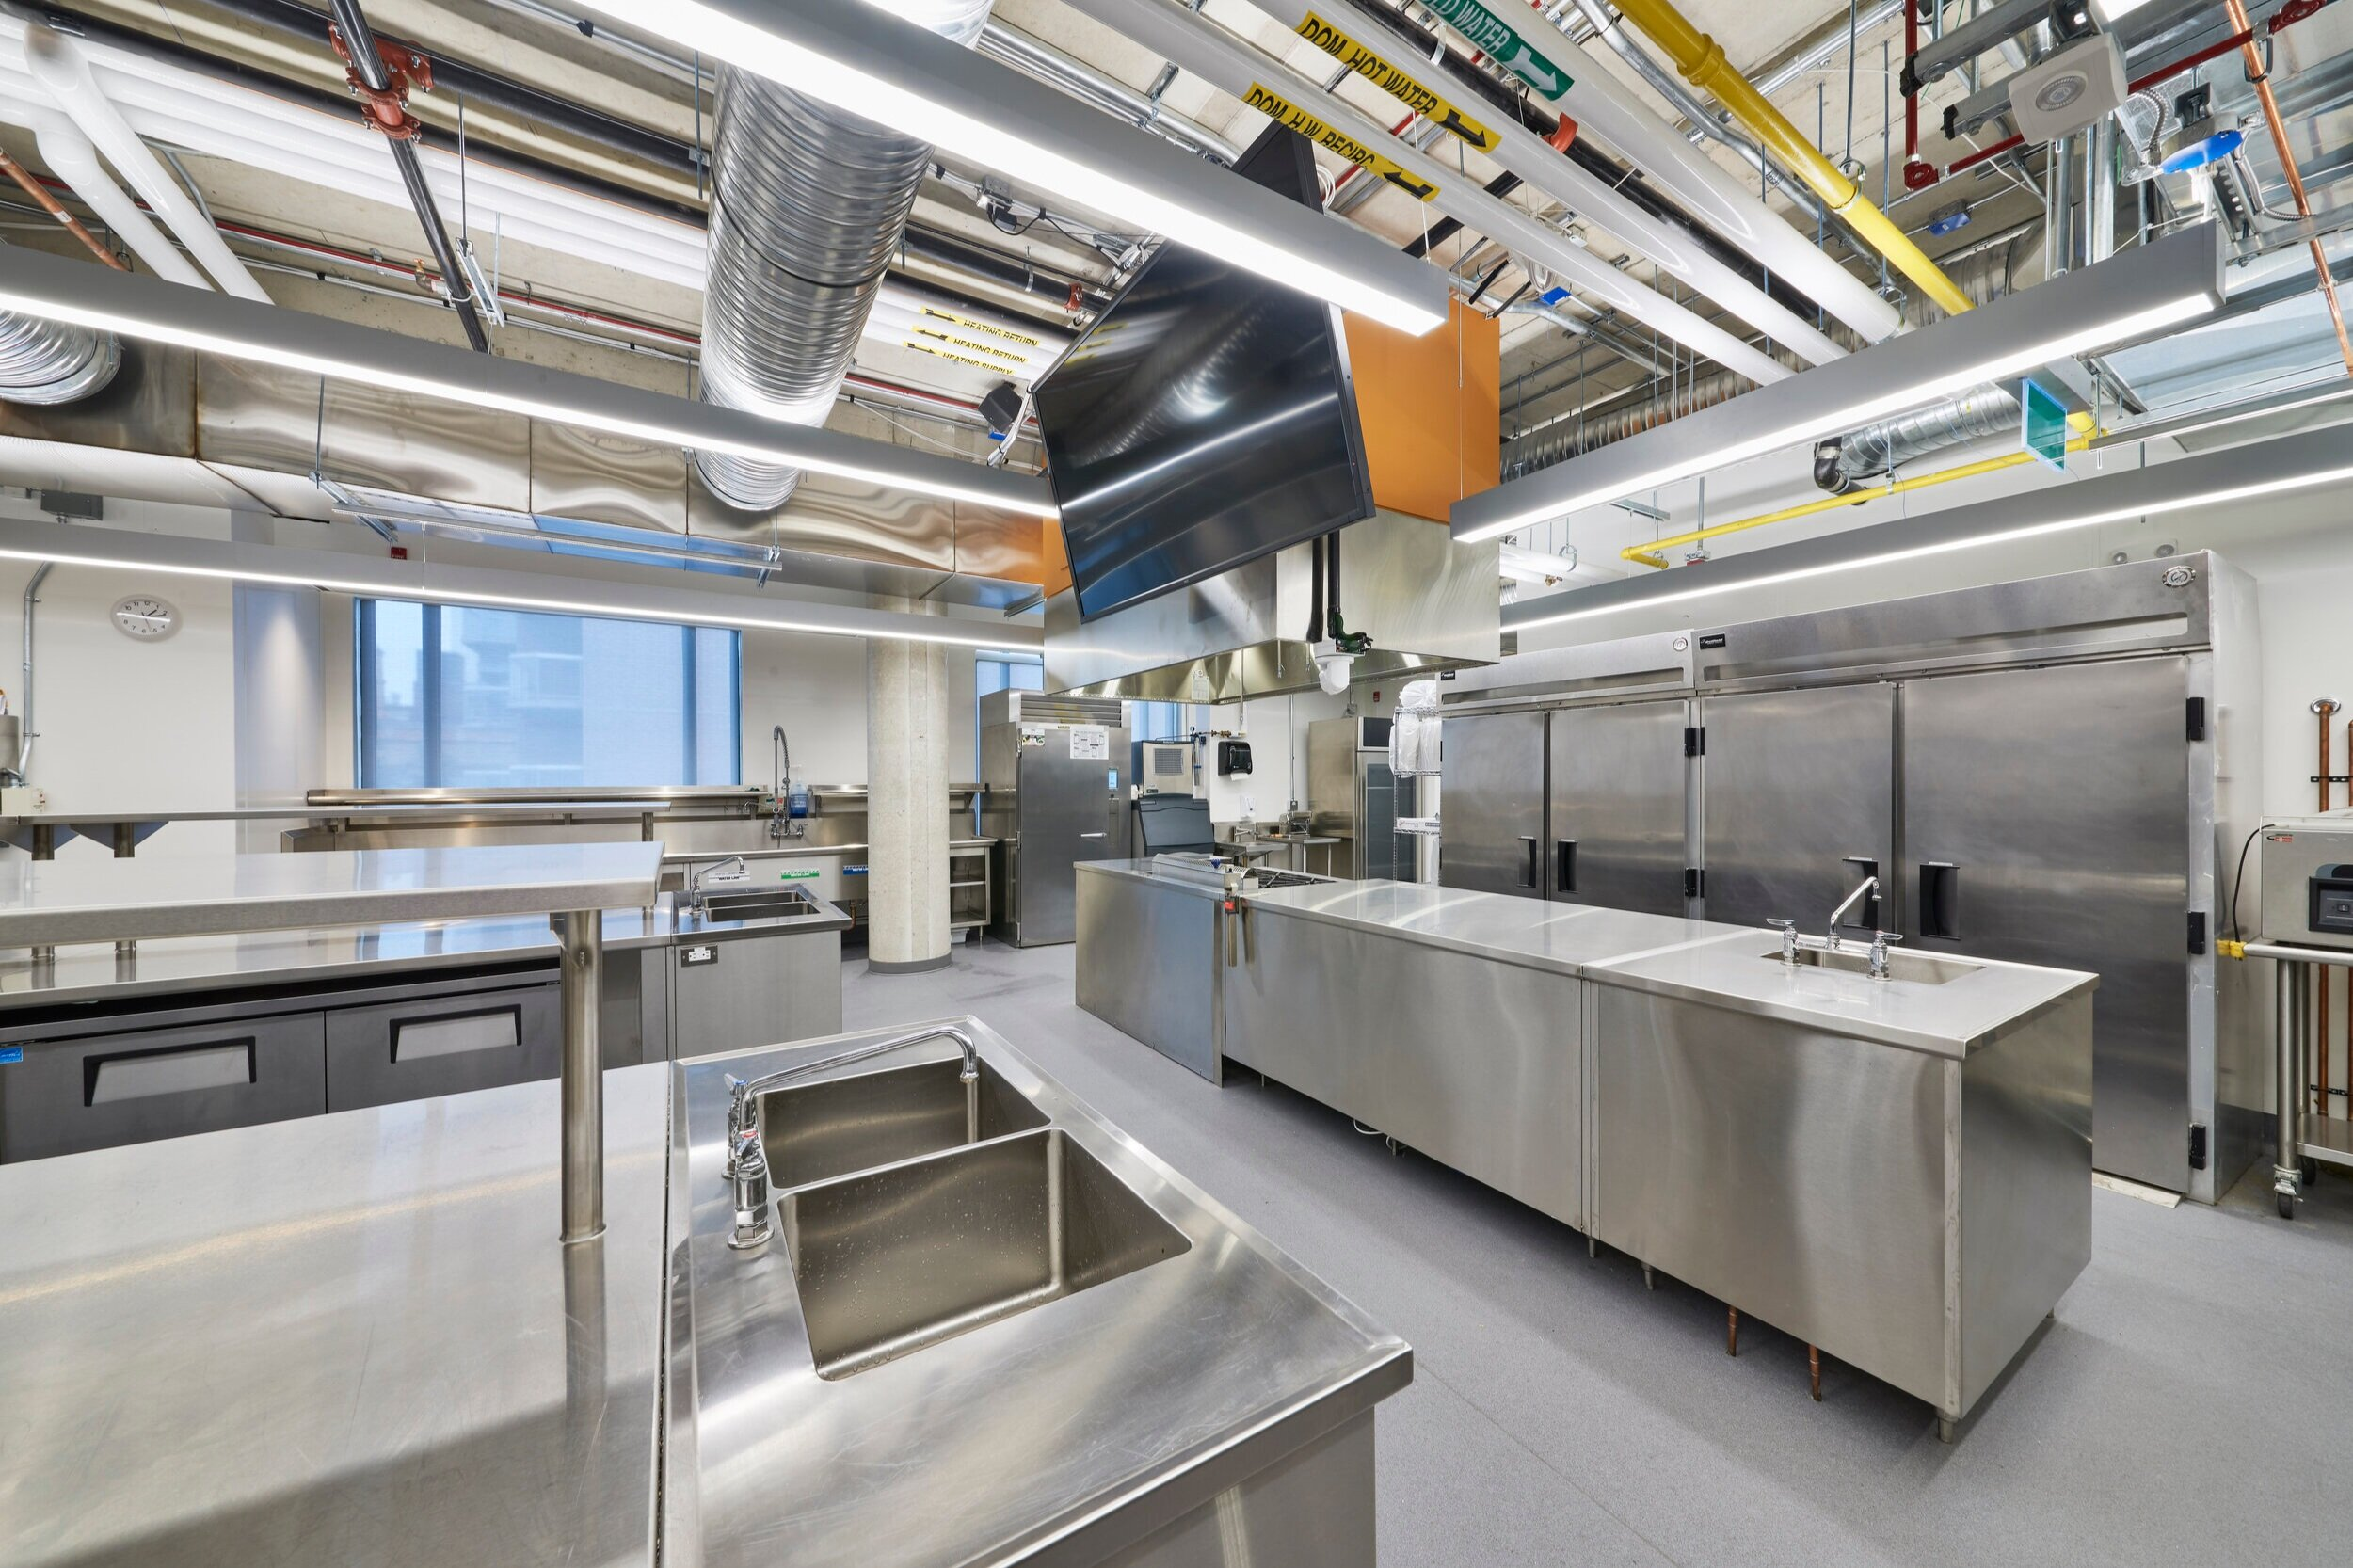 Fourth alternate view of a Culinary Kitchen Lab at the Centre for Hospitality & Culinary Arts at George Brown College